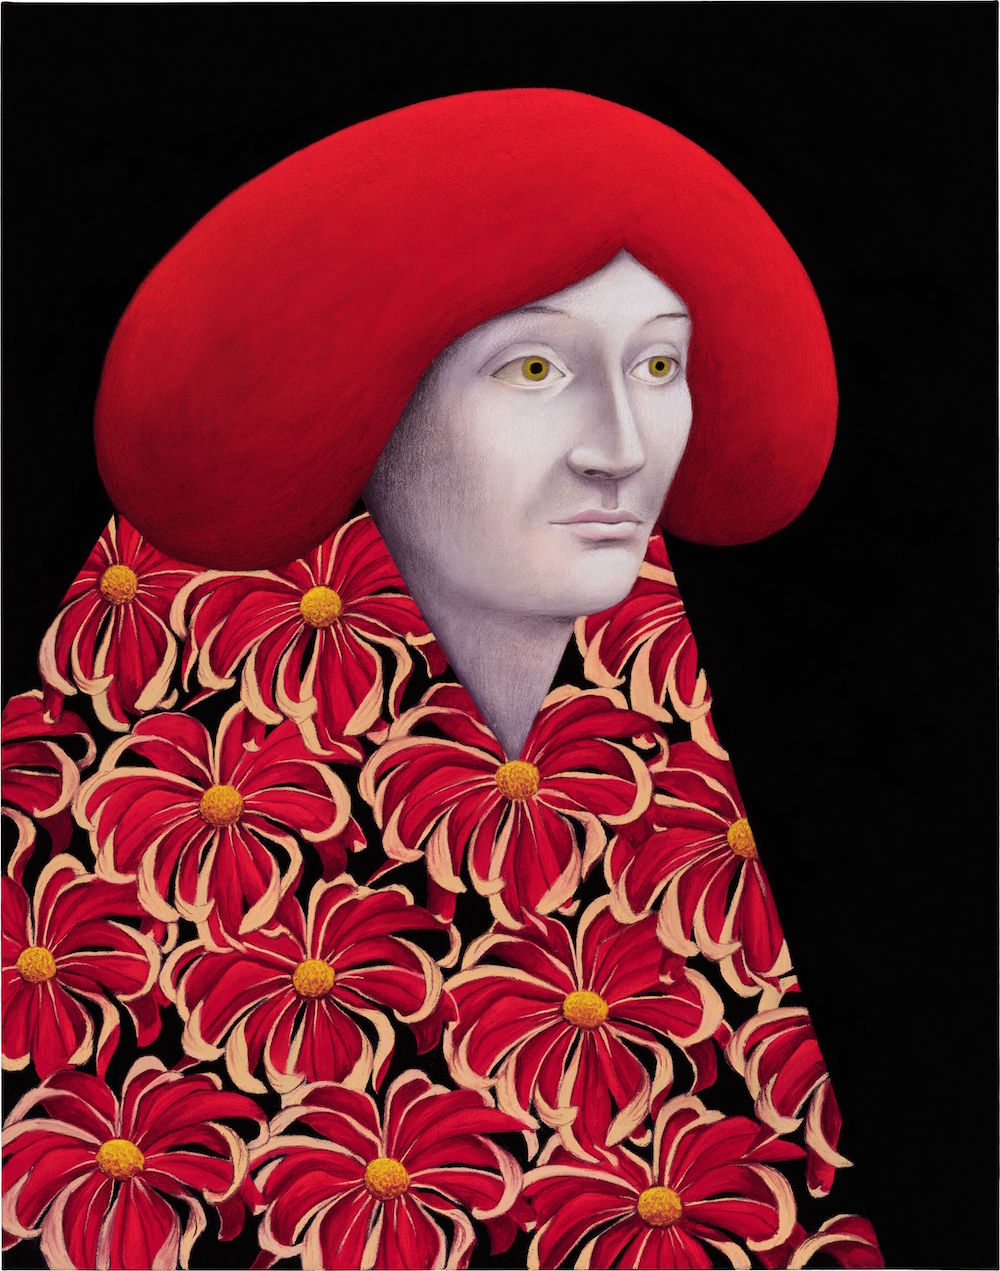 Portrait with Red Flowers, 2020, by Nicolas Party, at Hauser & Wirth